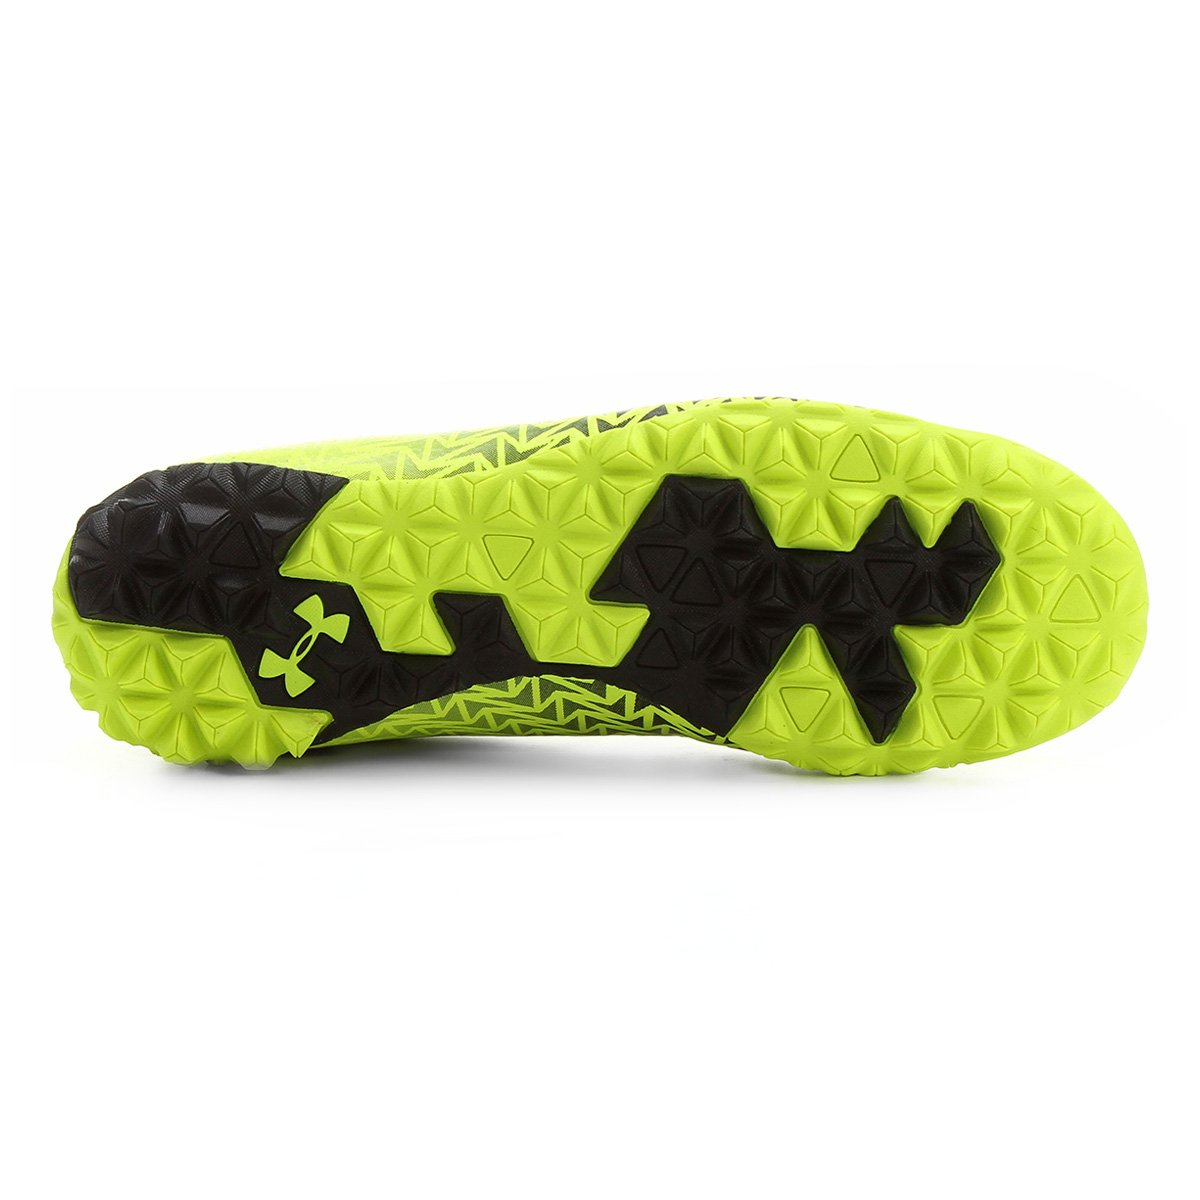 Chuteira Society Under Armour CF Force 3.0 TF - Amarelo Fluorescente ... 61bfee394bc86